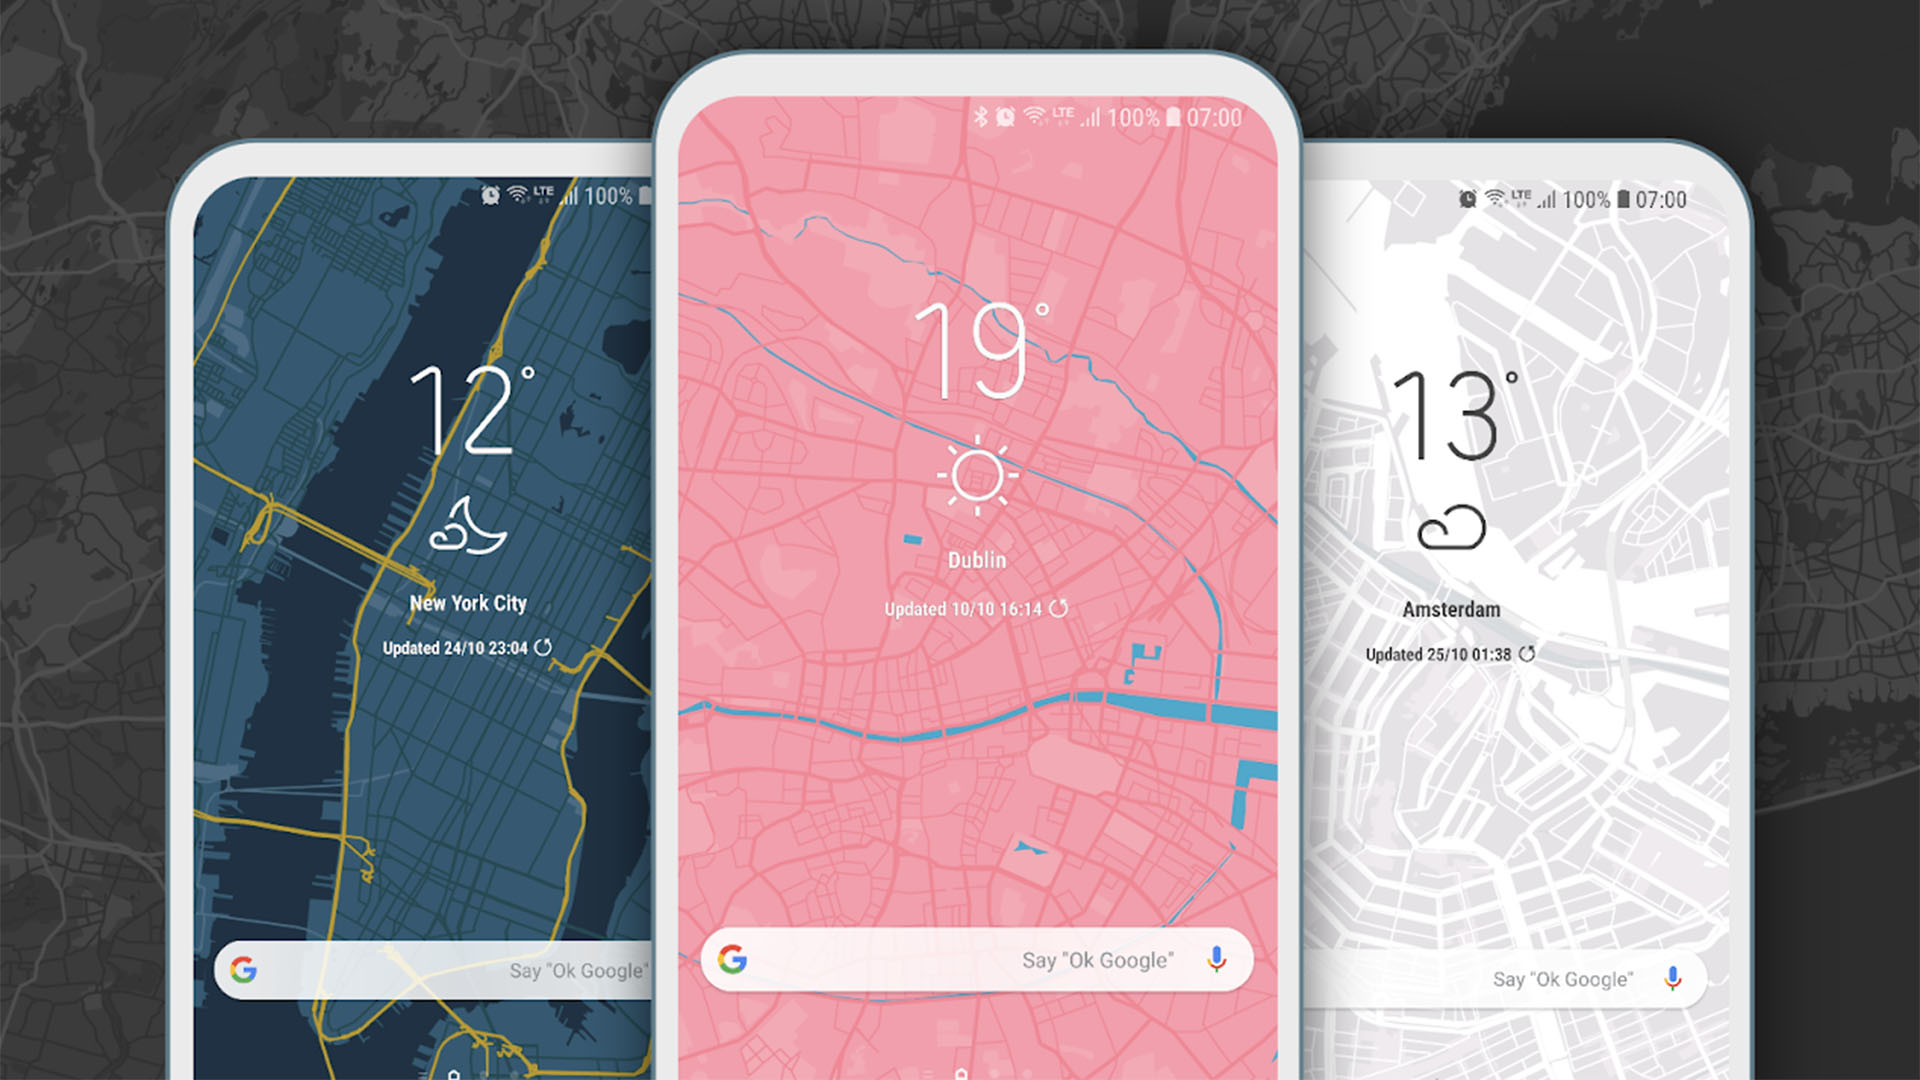 10 Best Live Wallpaper Apps For Android Android Authority